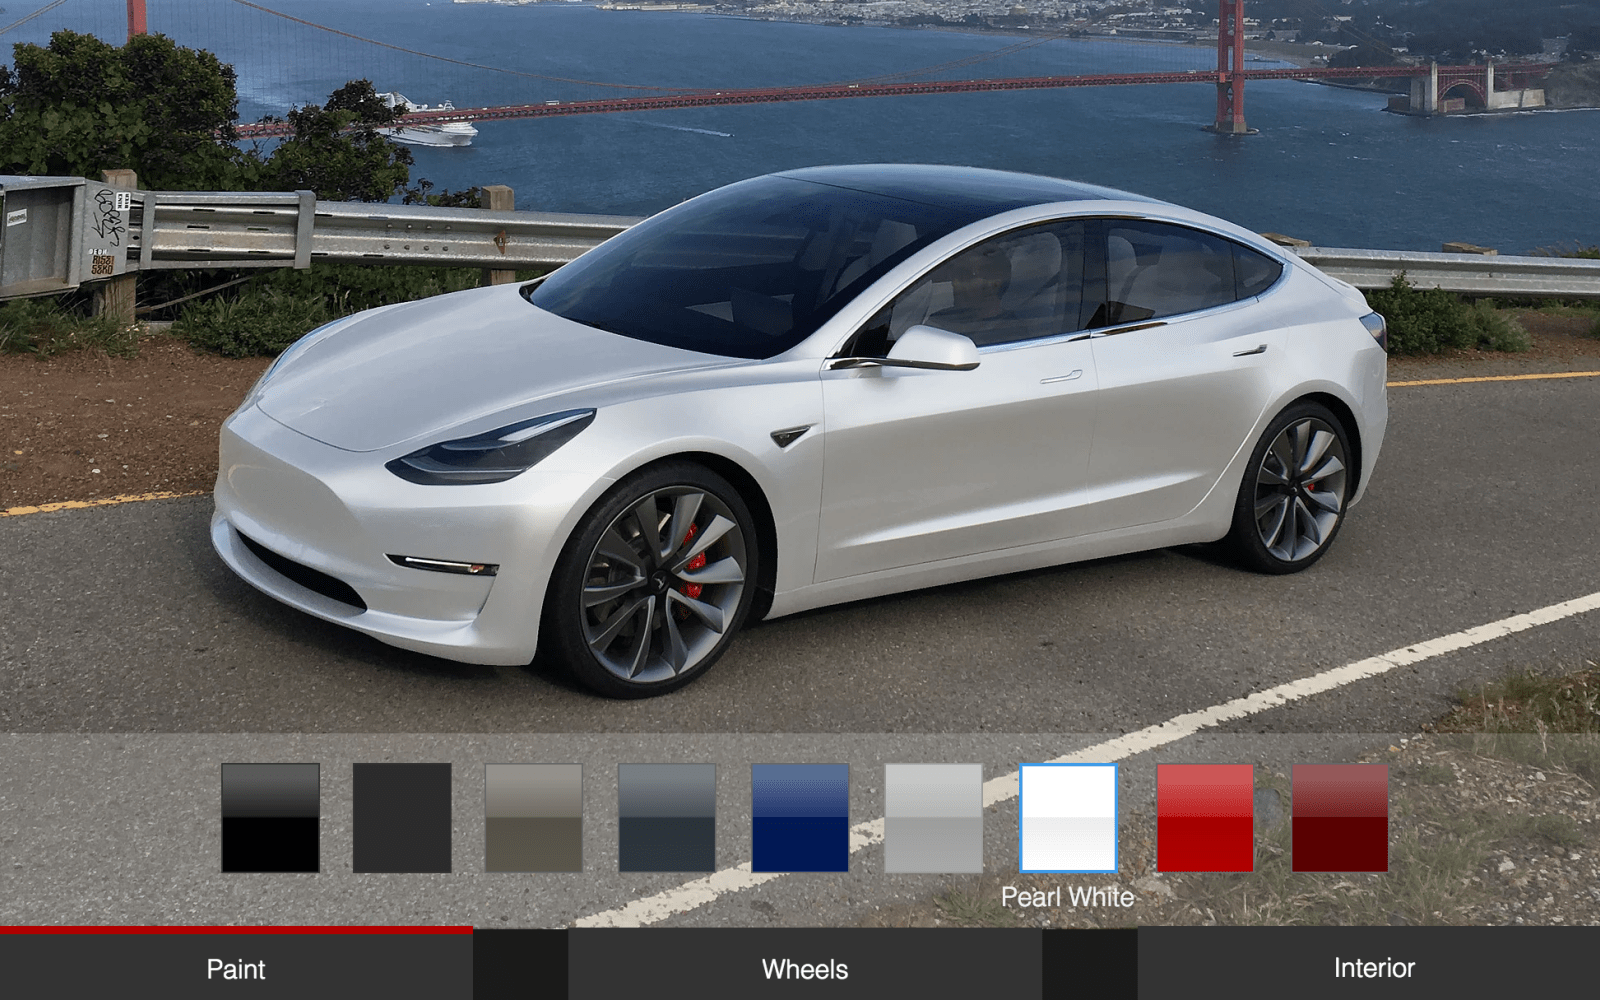 Tesla Model 3 Average Sale Price And Budget To Be Closer To 50000 Based On Latest Data From